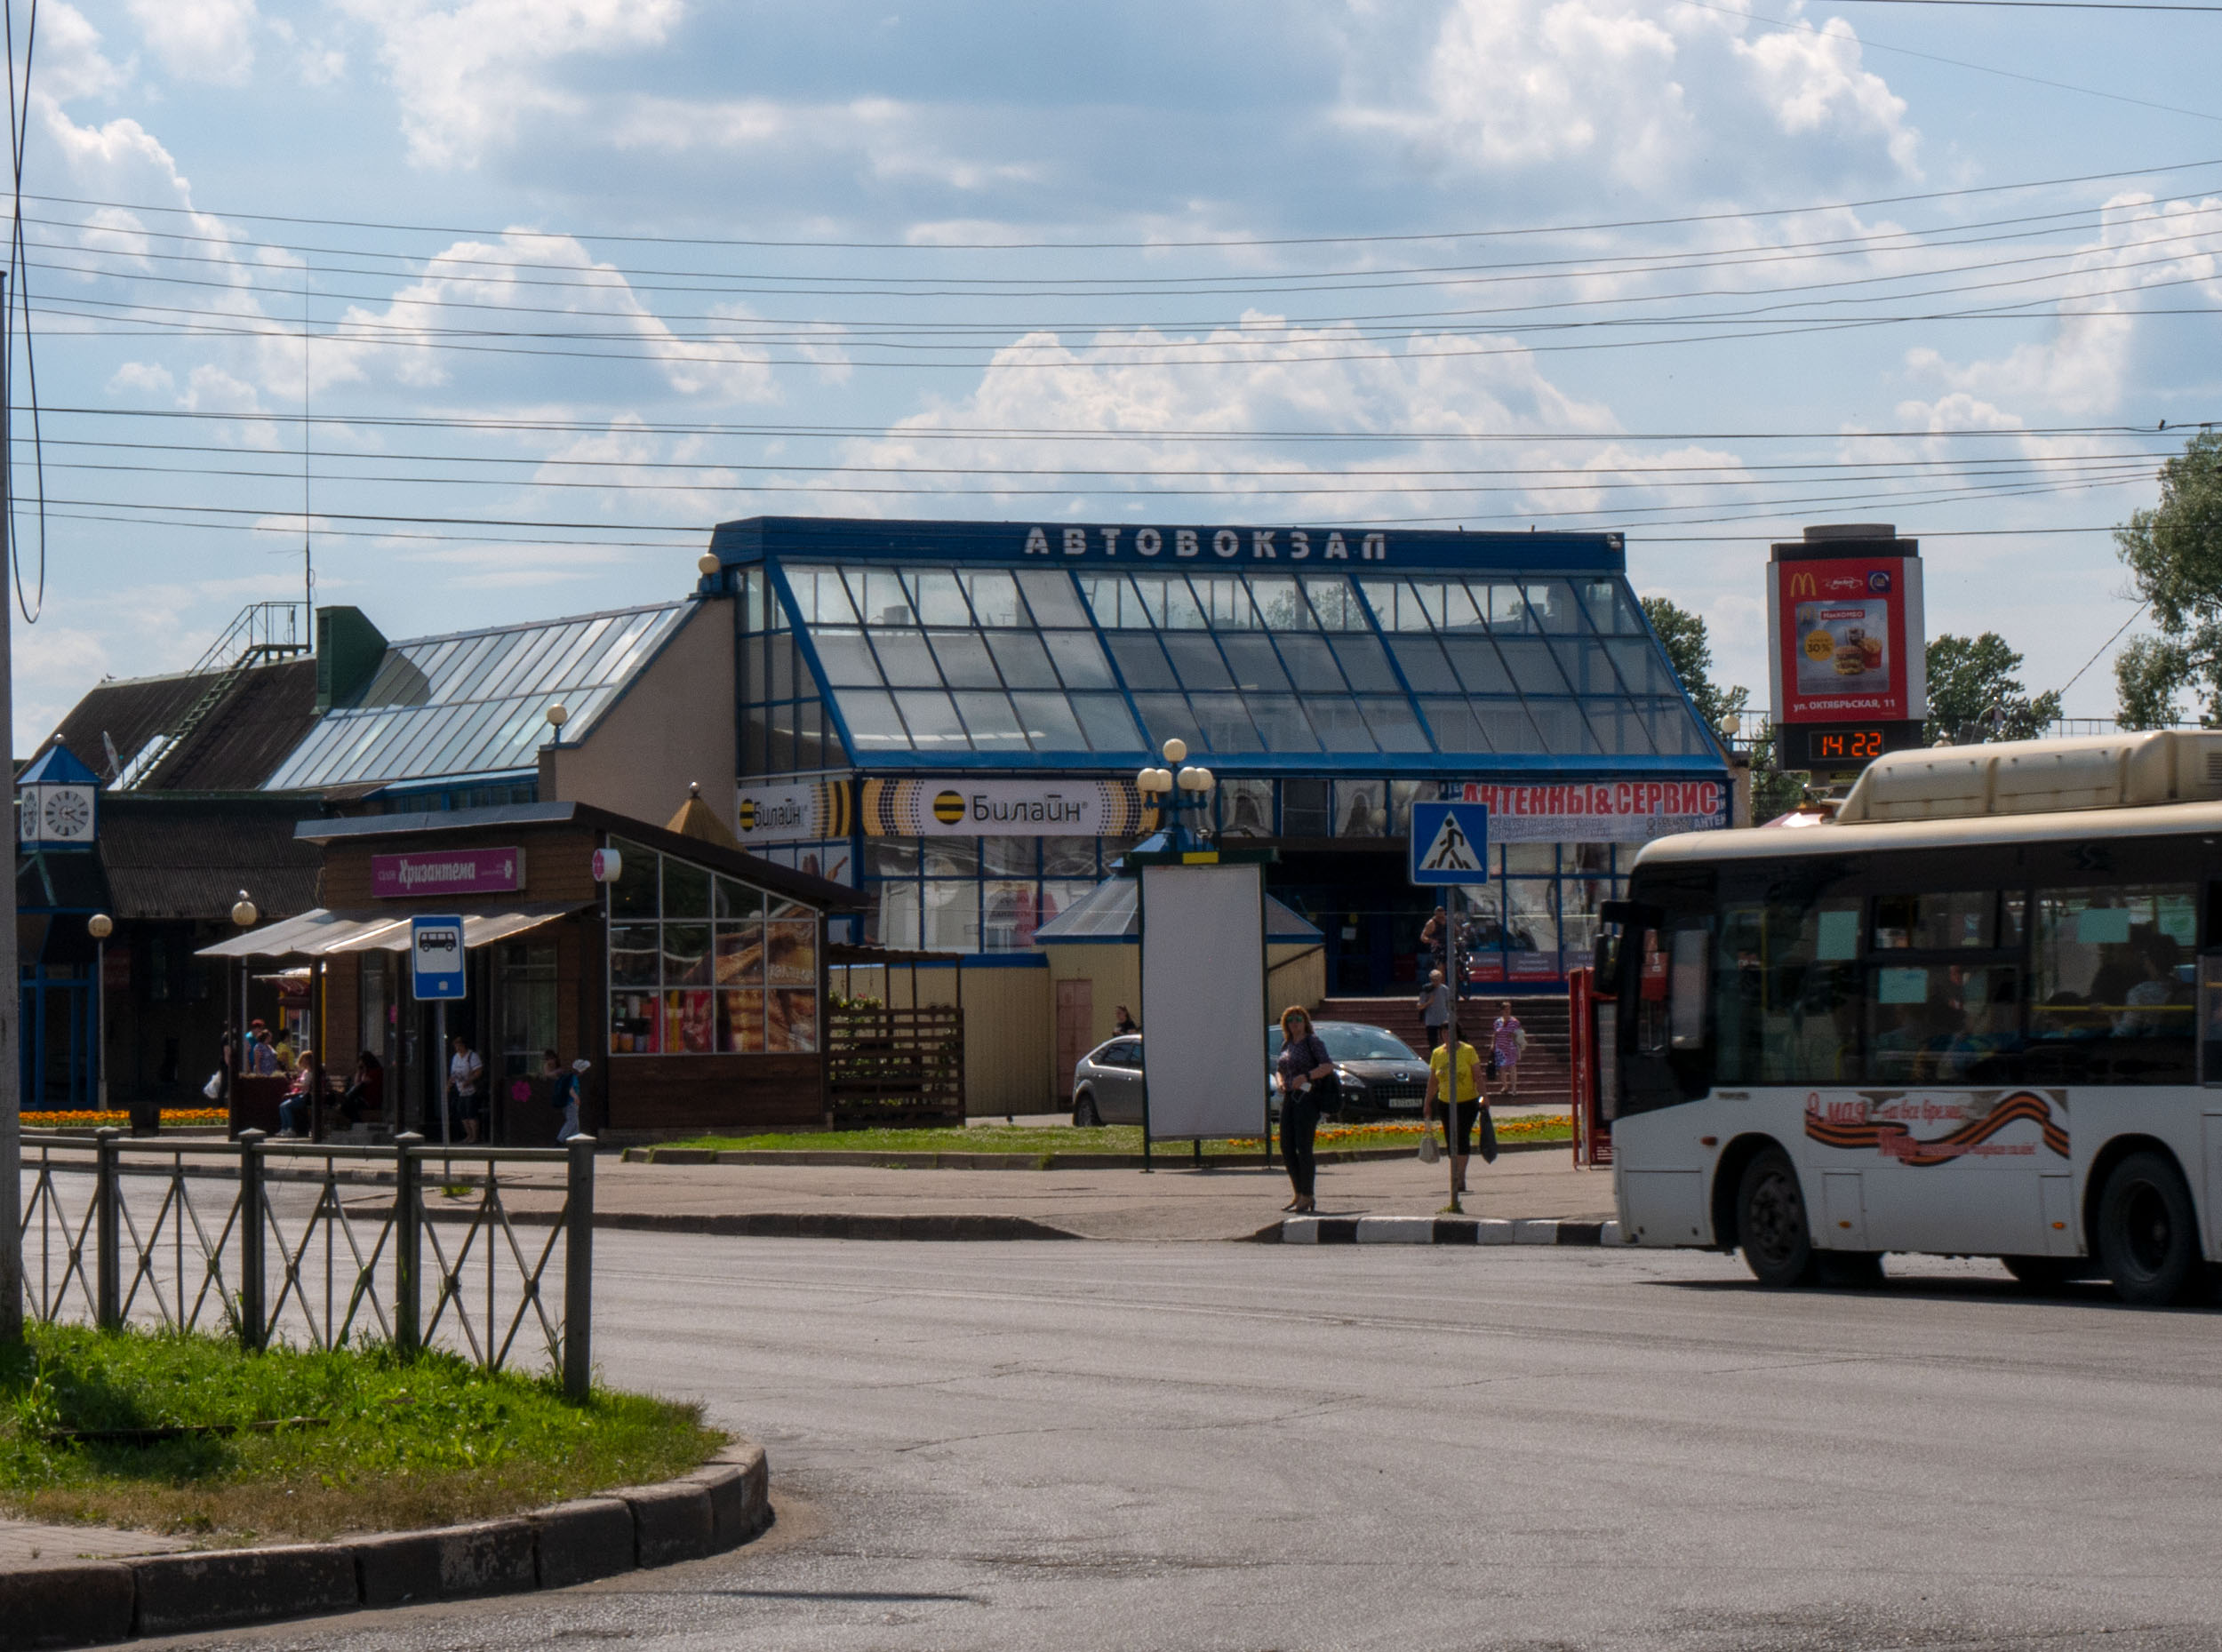 The Bus Station in Veliky Novgorod